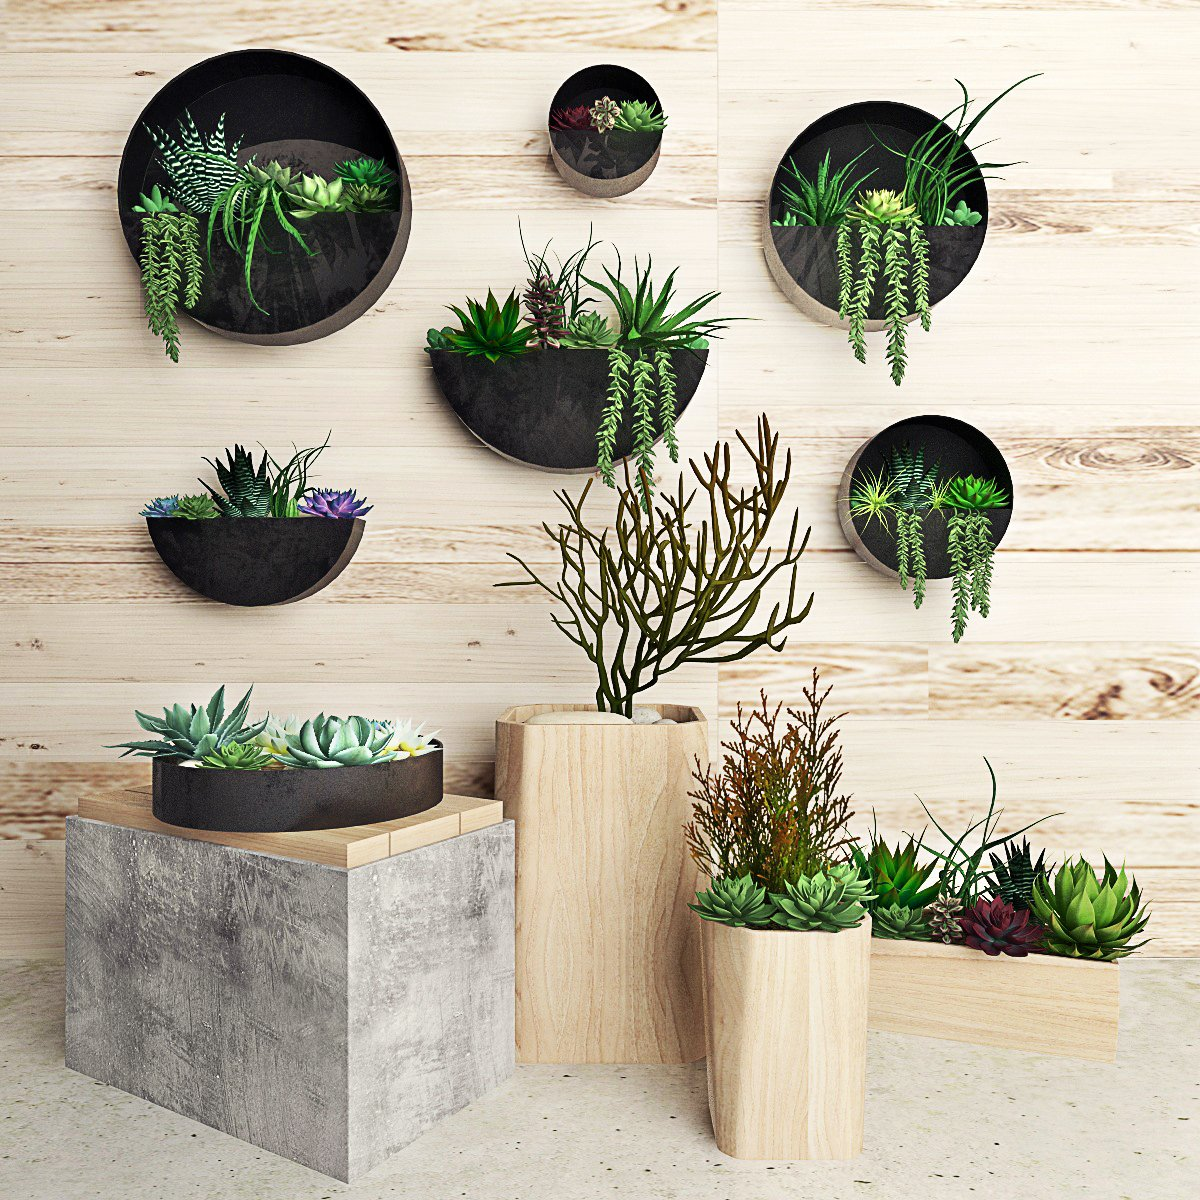 Plant On The Wall 111 3d Model In Small Plants 3dexport